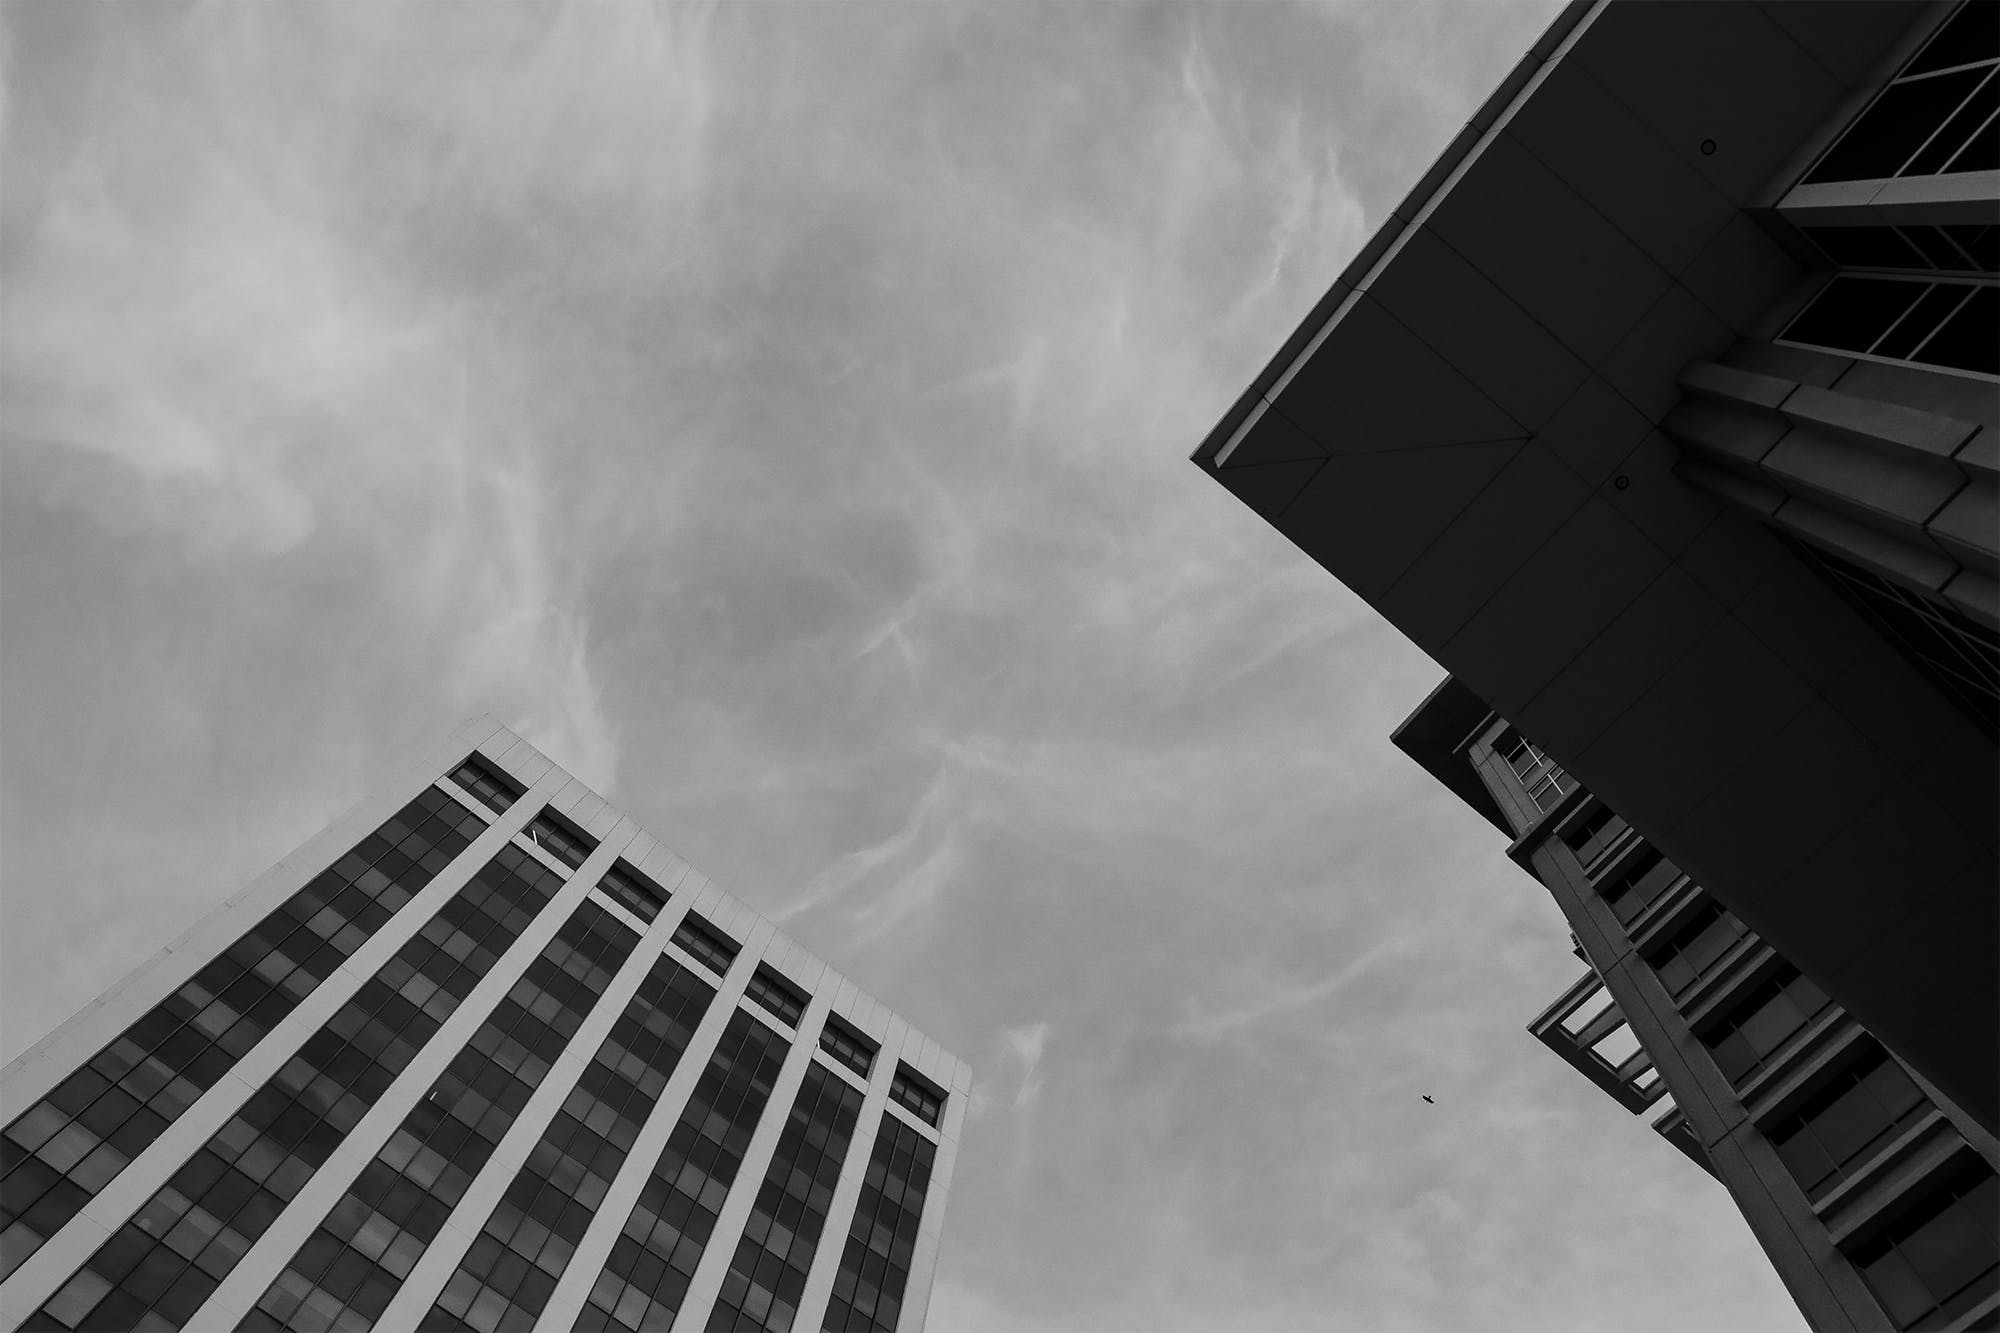 Free stock photo of black and white, buildings, city, clouds